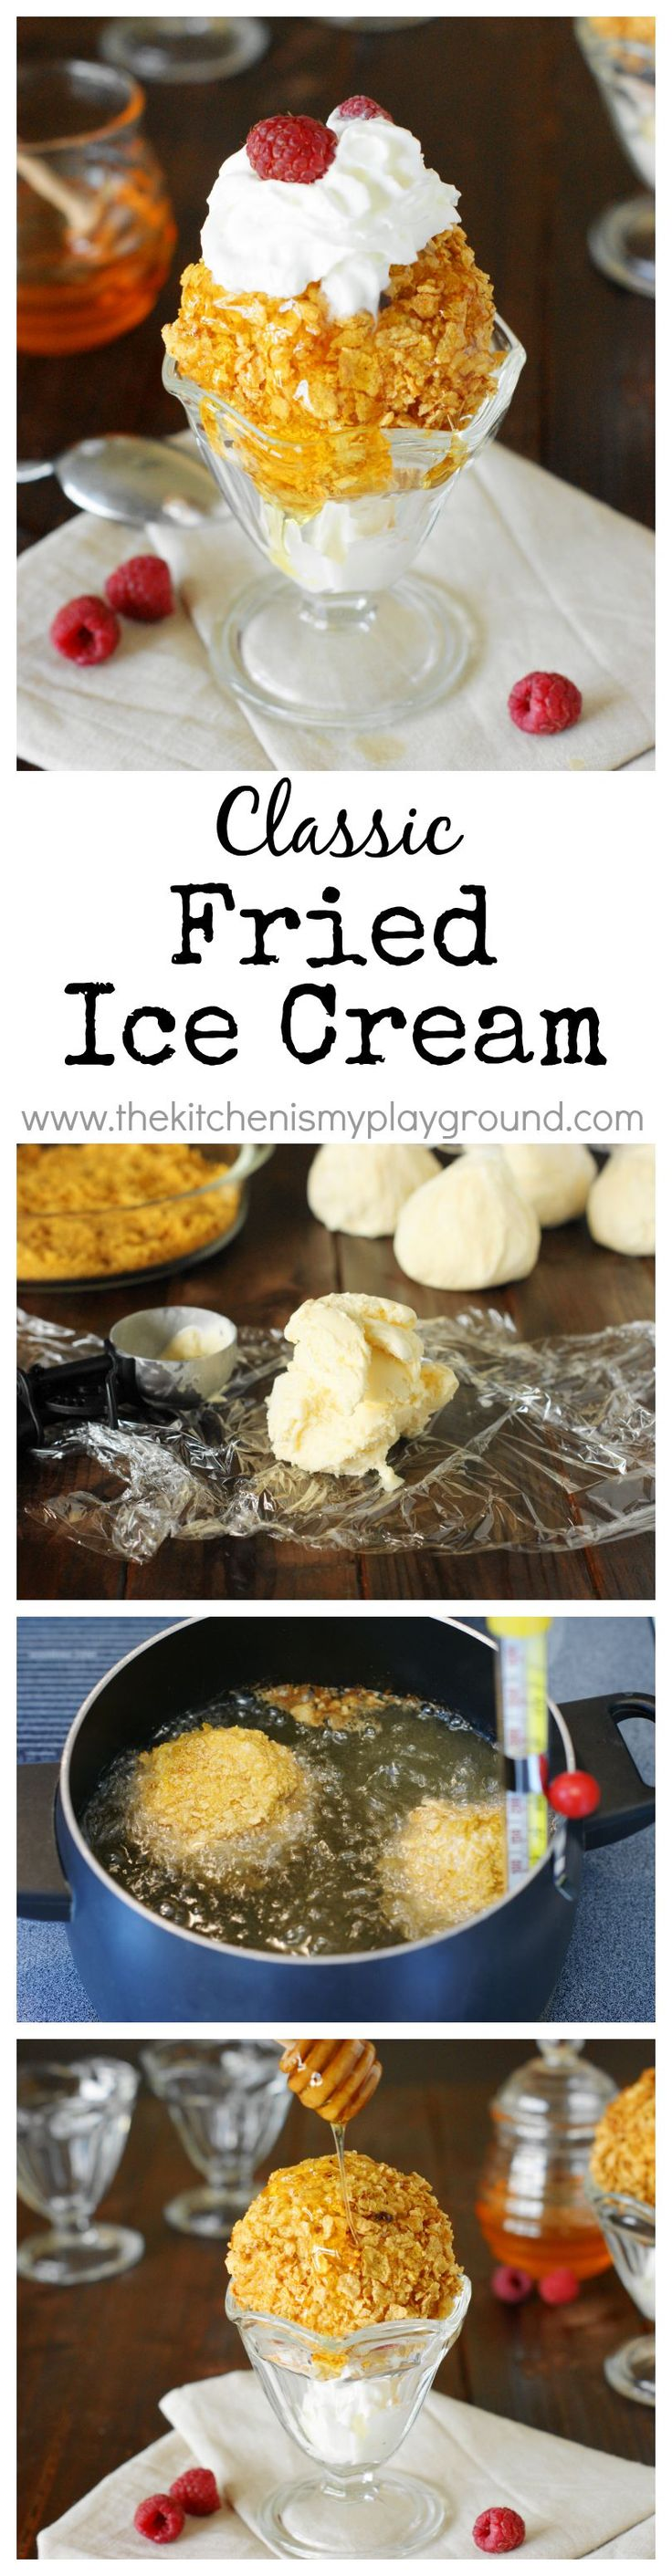 Fried Ice Cream ~ The perfect combination of crunchy on the outside, and cool & creamy on the inside.  Whip up this restaurant-style treat right at home!   www.thekitchenismyplayground.com